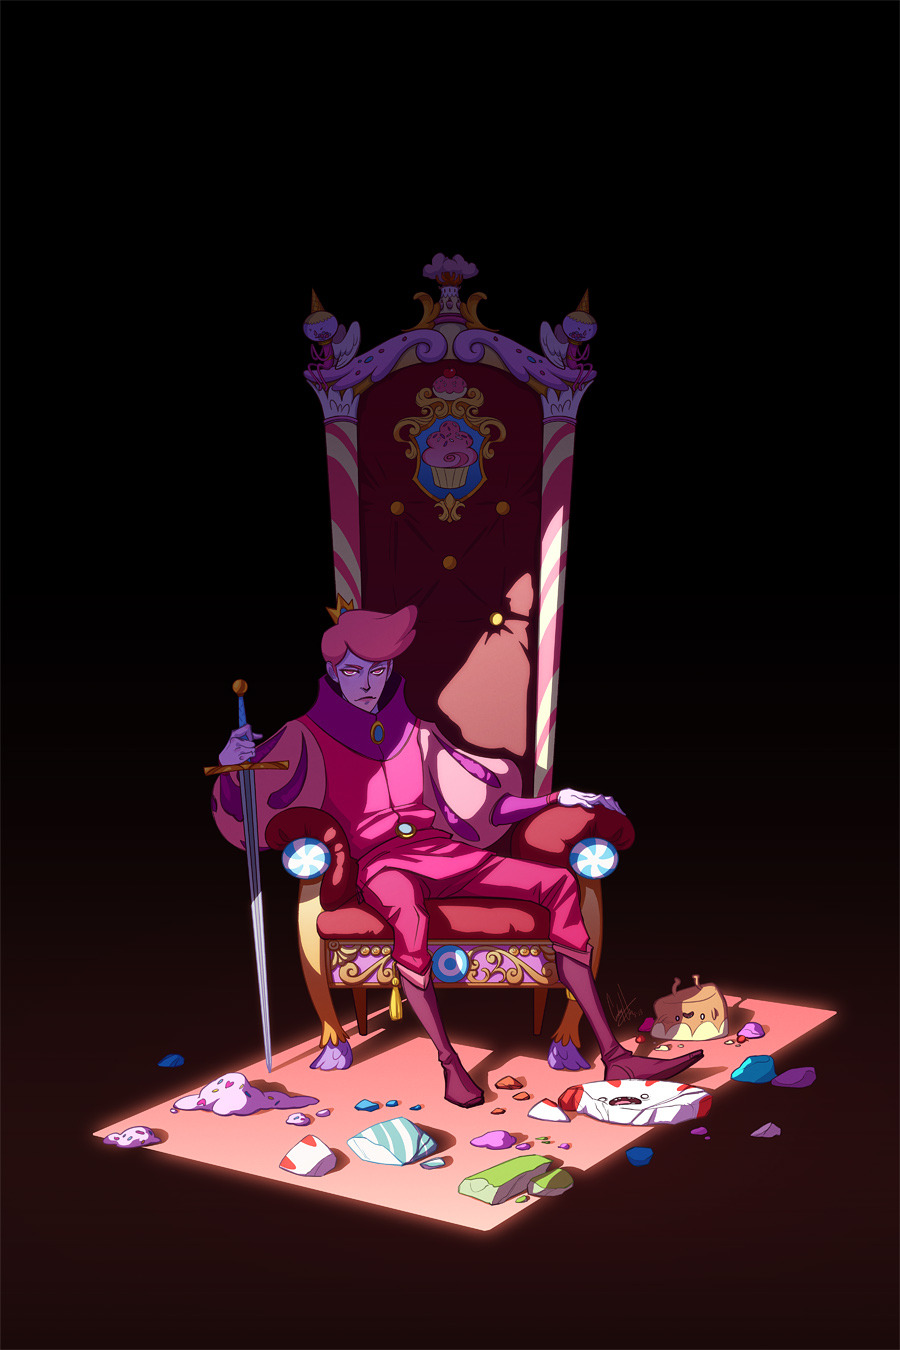 sugarblaster:  kisskicker:  Prince Gumball's path to the throne was brutal. Fionna wasn't around during the Sugar Wars; Gumball distracts her by acting super bland and wearing disco pants. Marshall Lee knows the truth, but as Chaotic Neutral, he just can't bring himself to give a shit. ETA: Nhyworks just gave me the amazing pun 'Game of Scones.' Brb dying ok.   'Game of Scones'